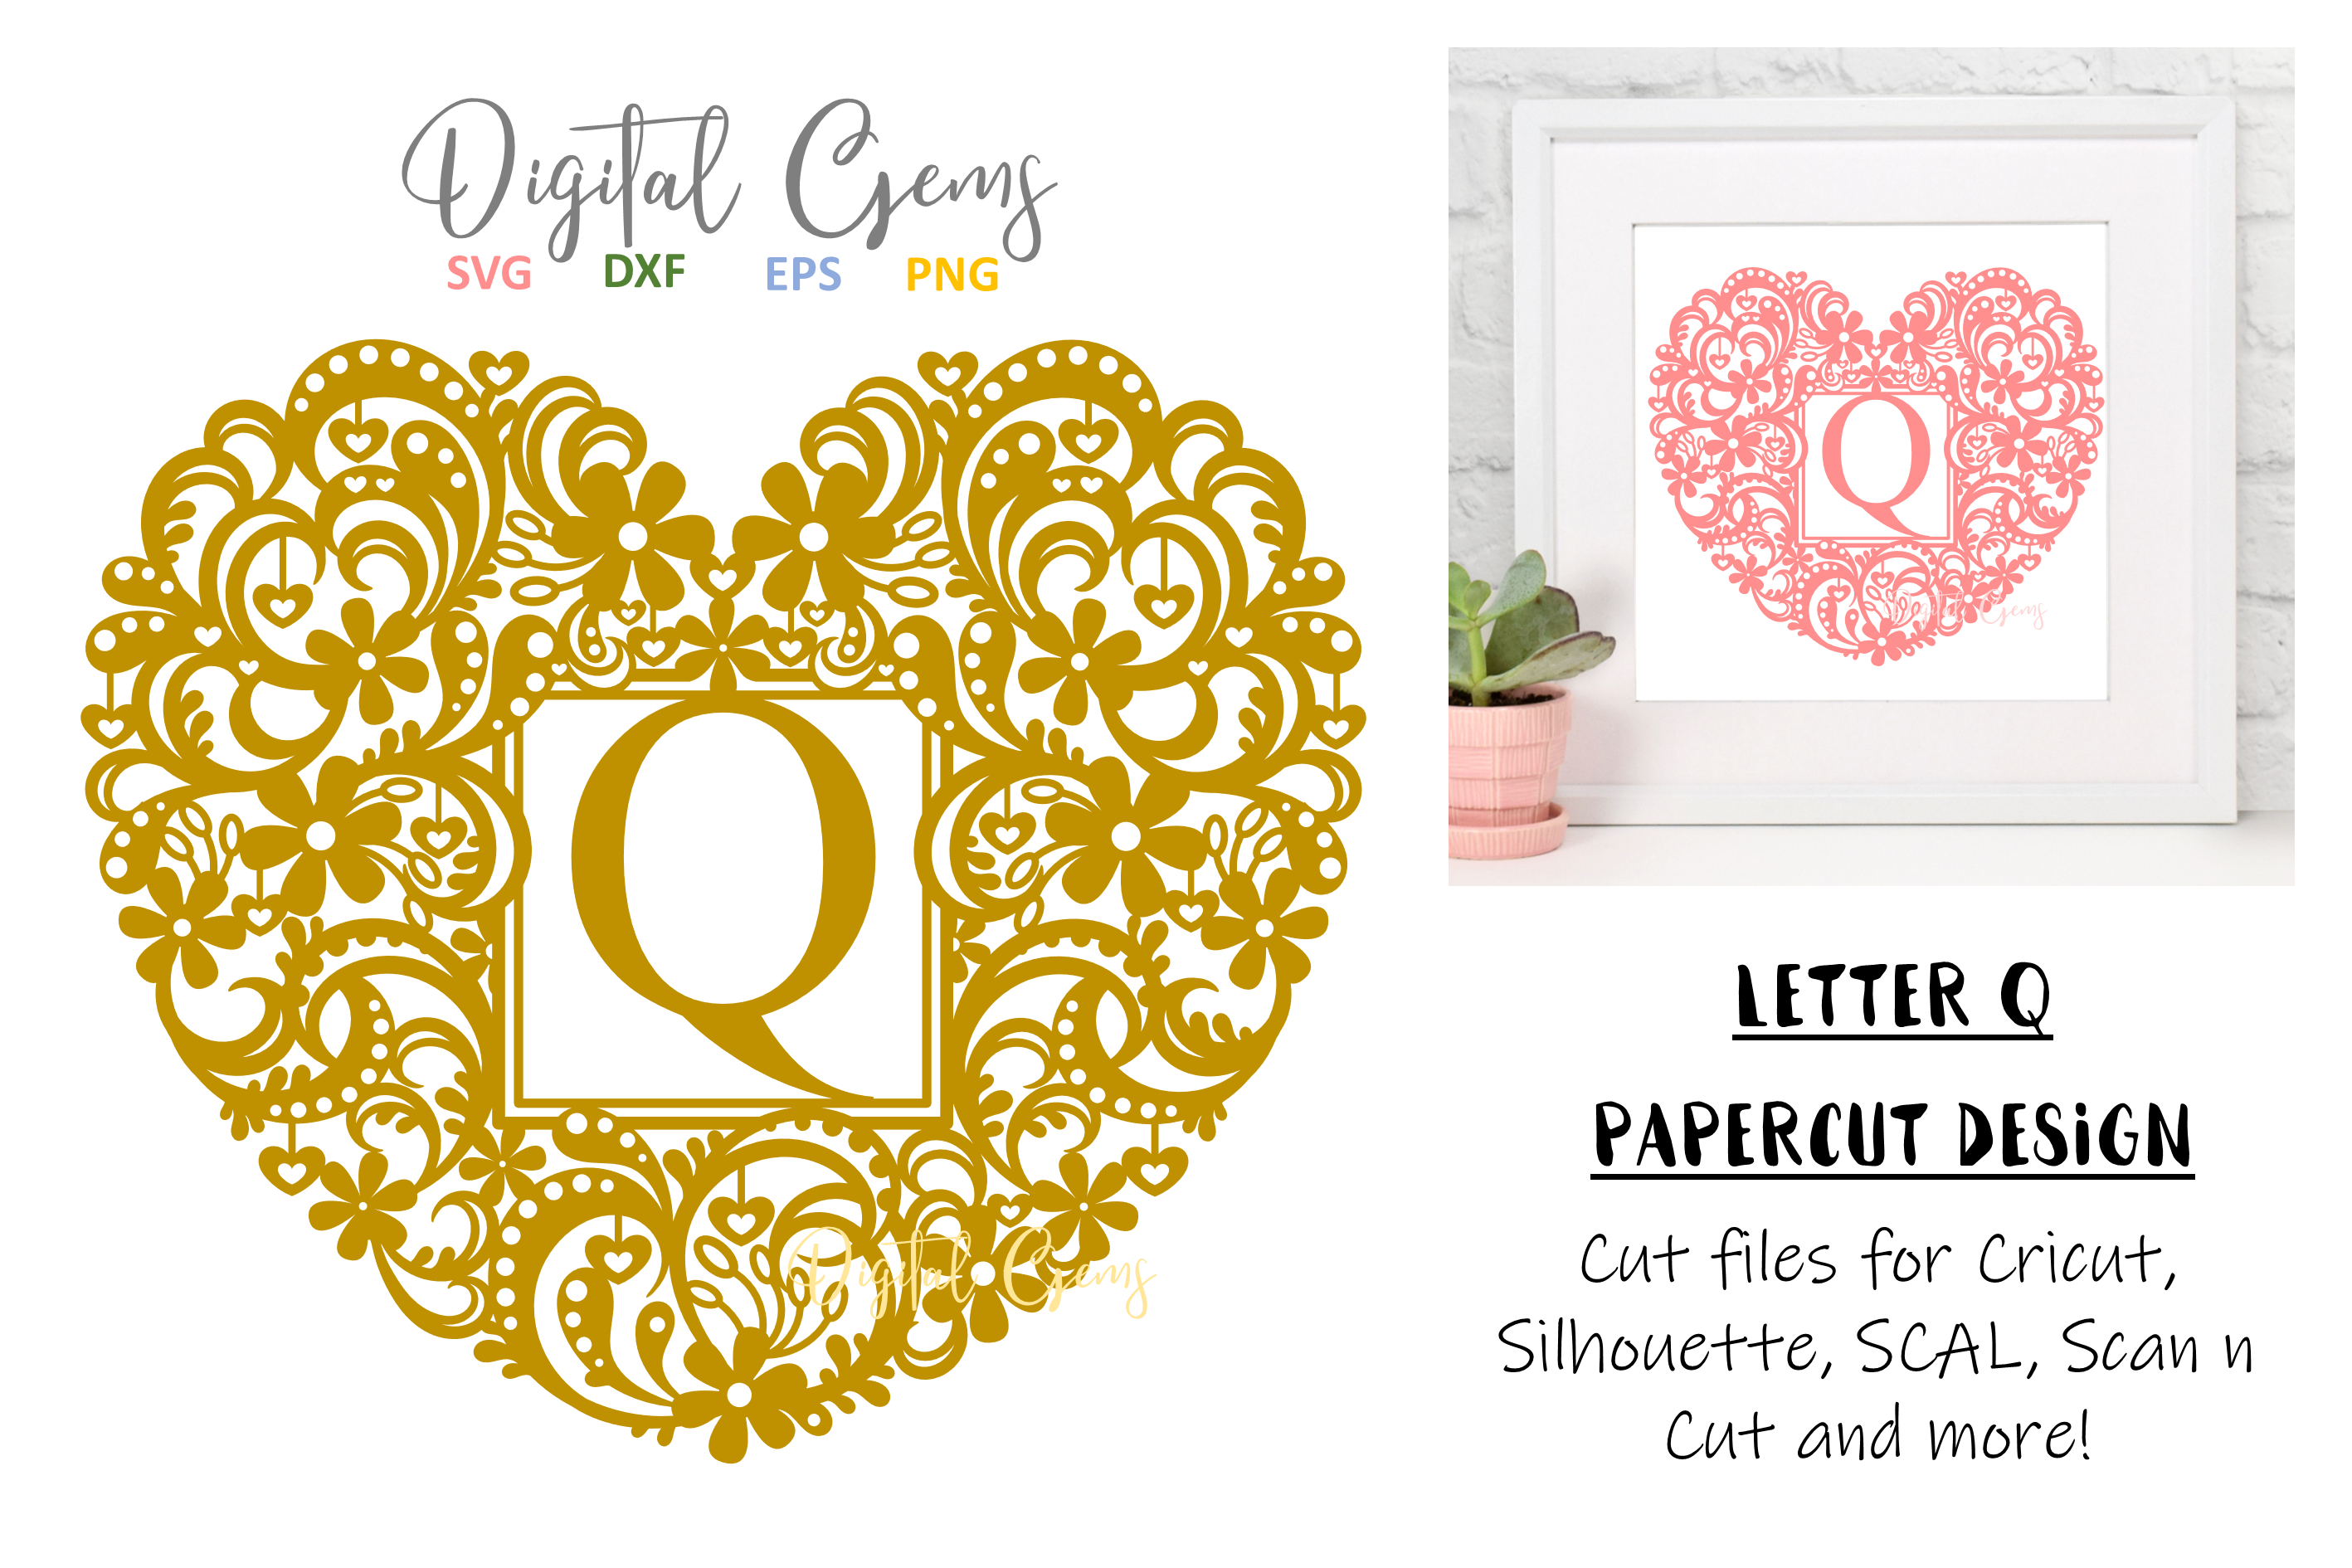 Letter Q paper cut design. SVG / DXF / EPS / PNG files example image 1